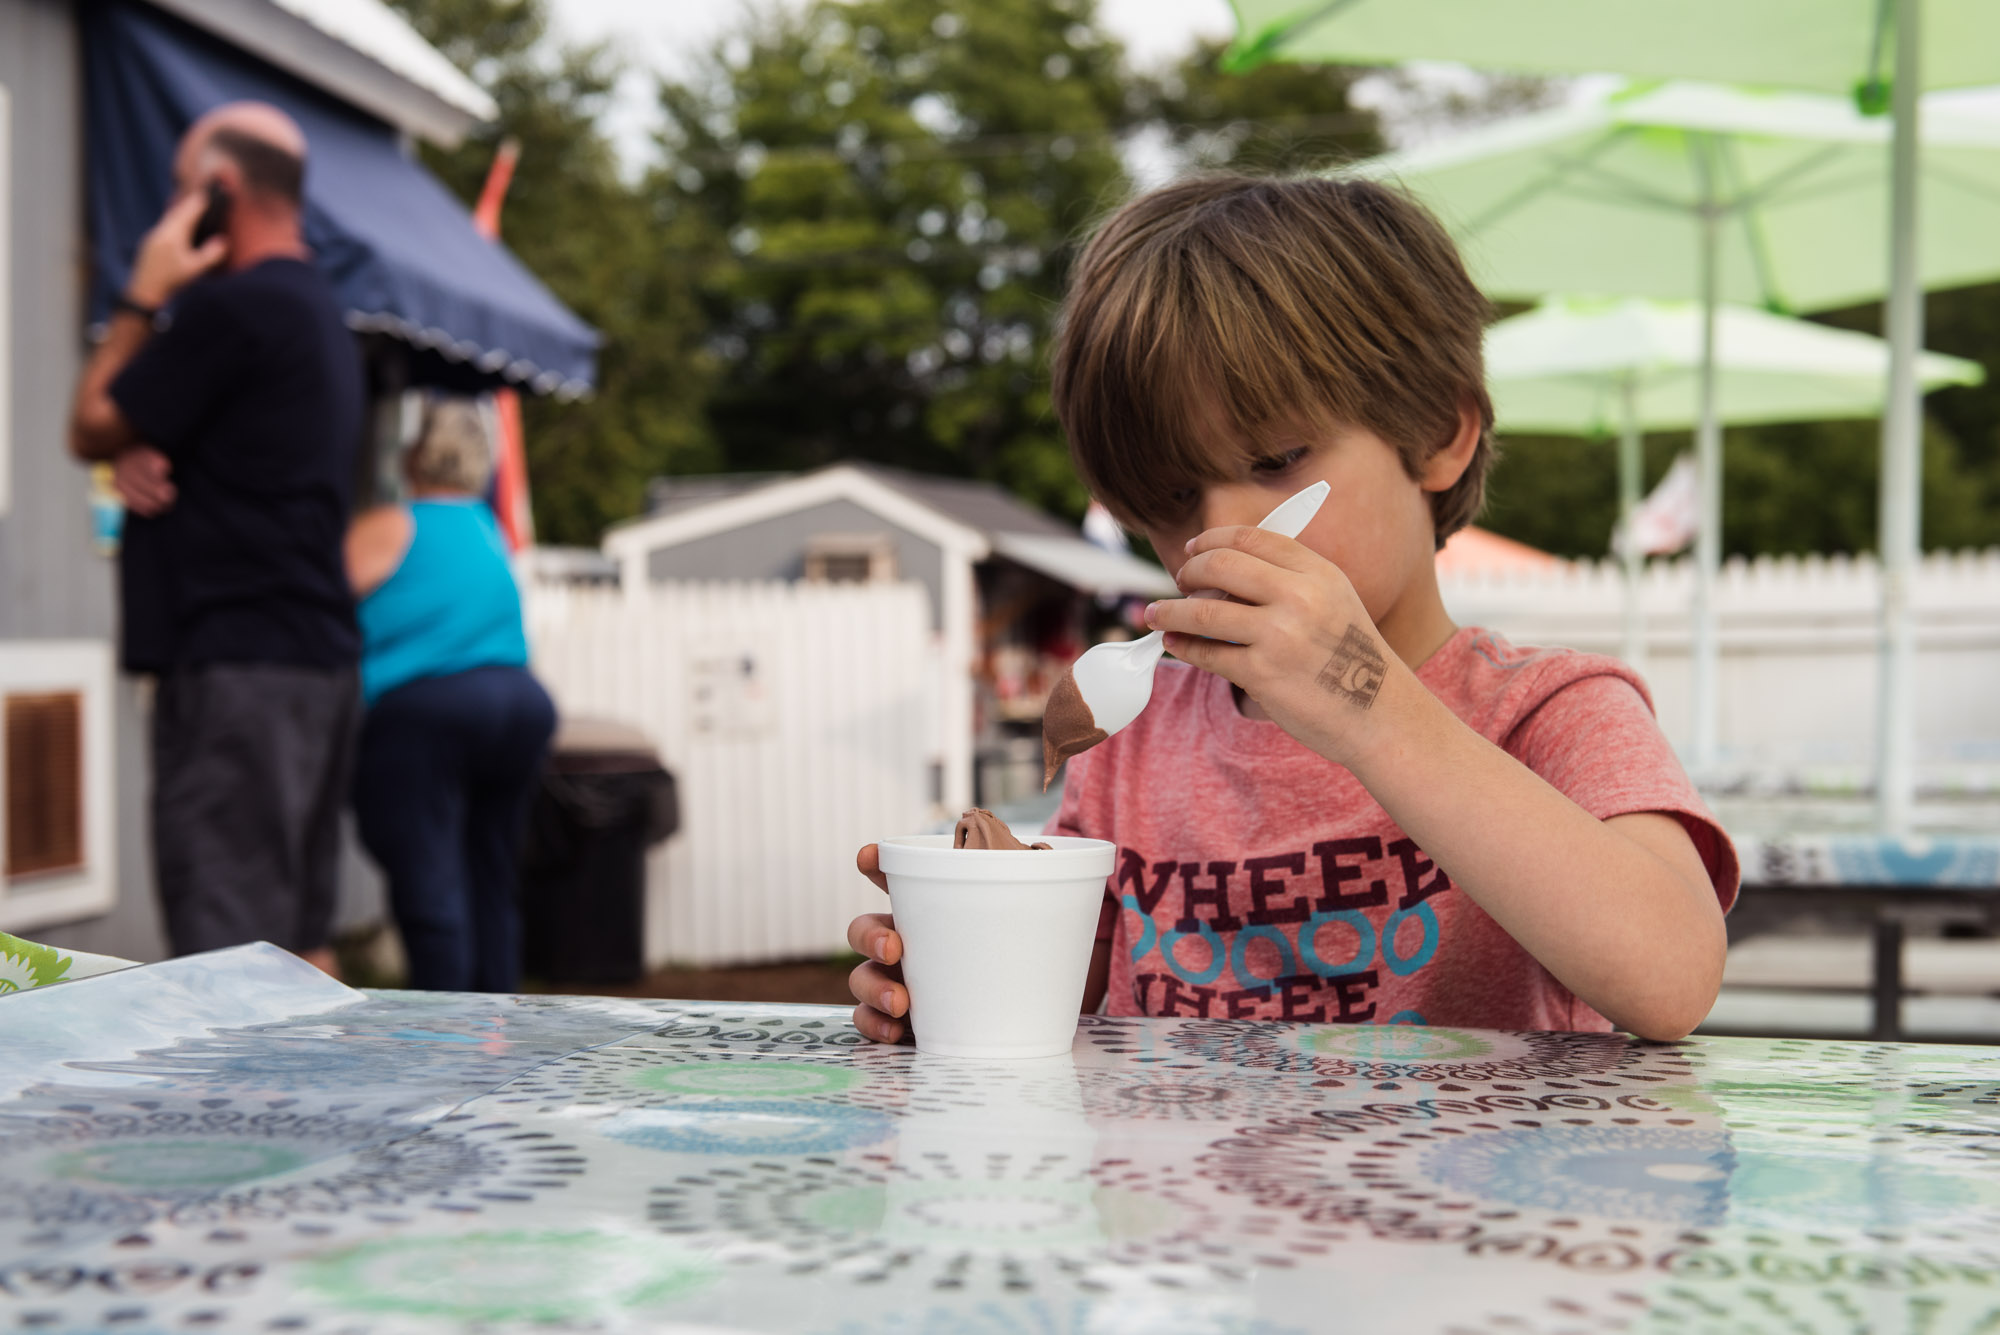 child eating ice cream at creemee stand in vermont picture by megan cieloha